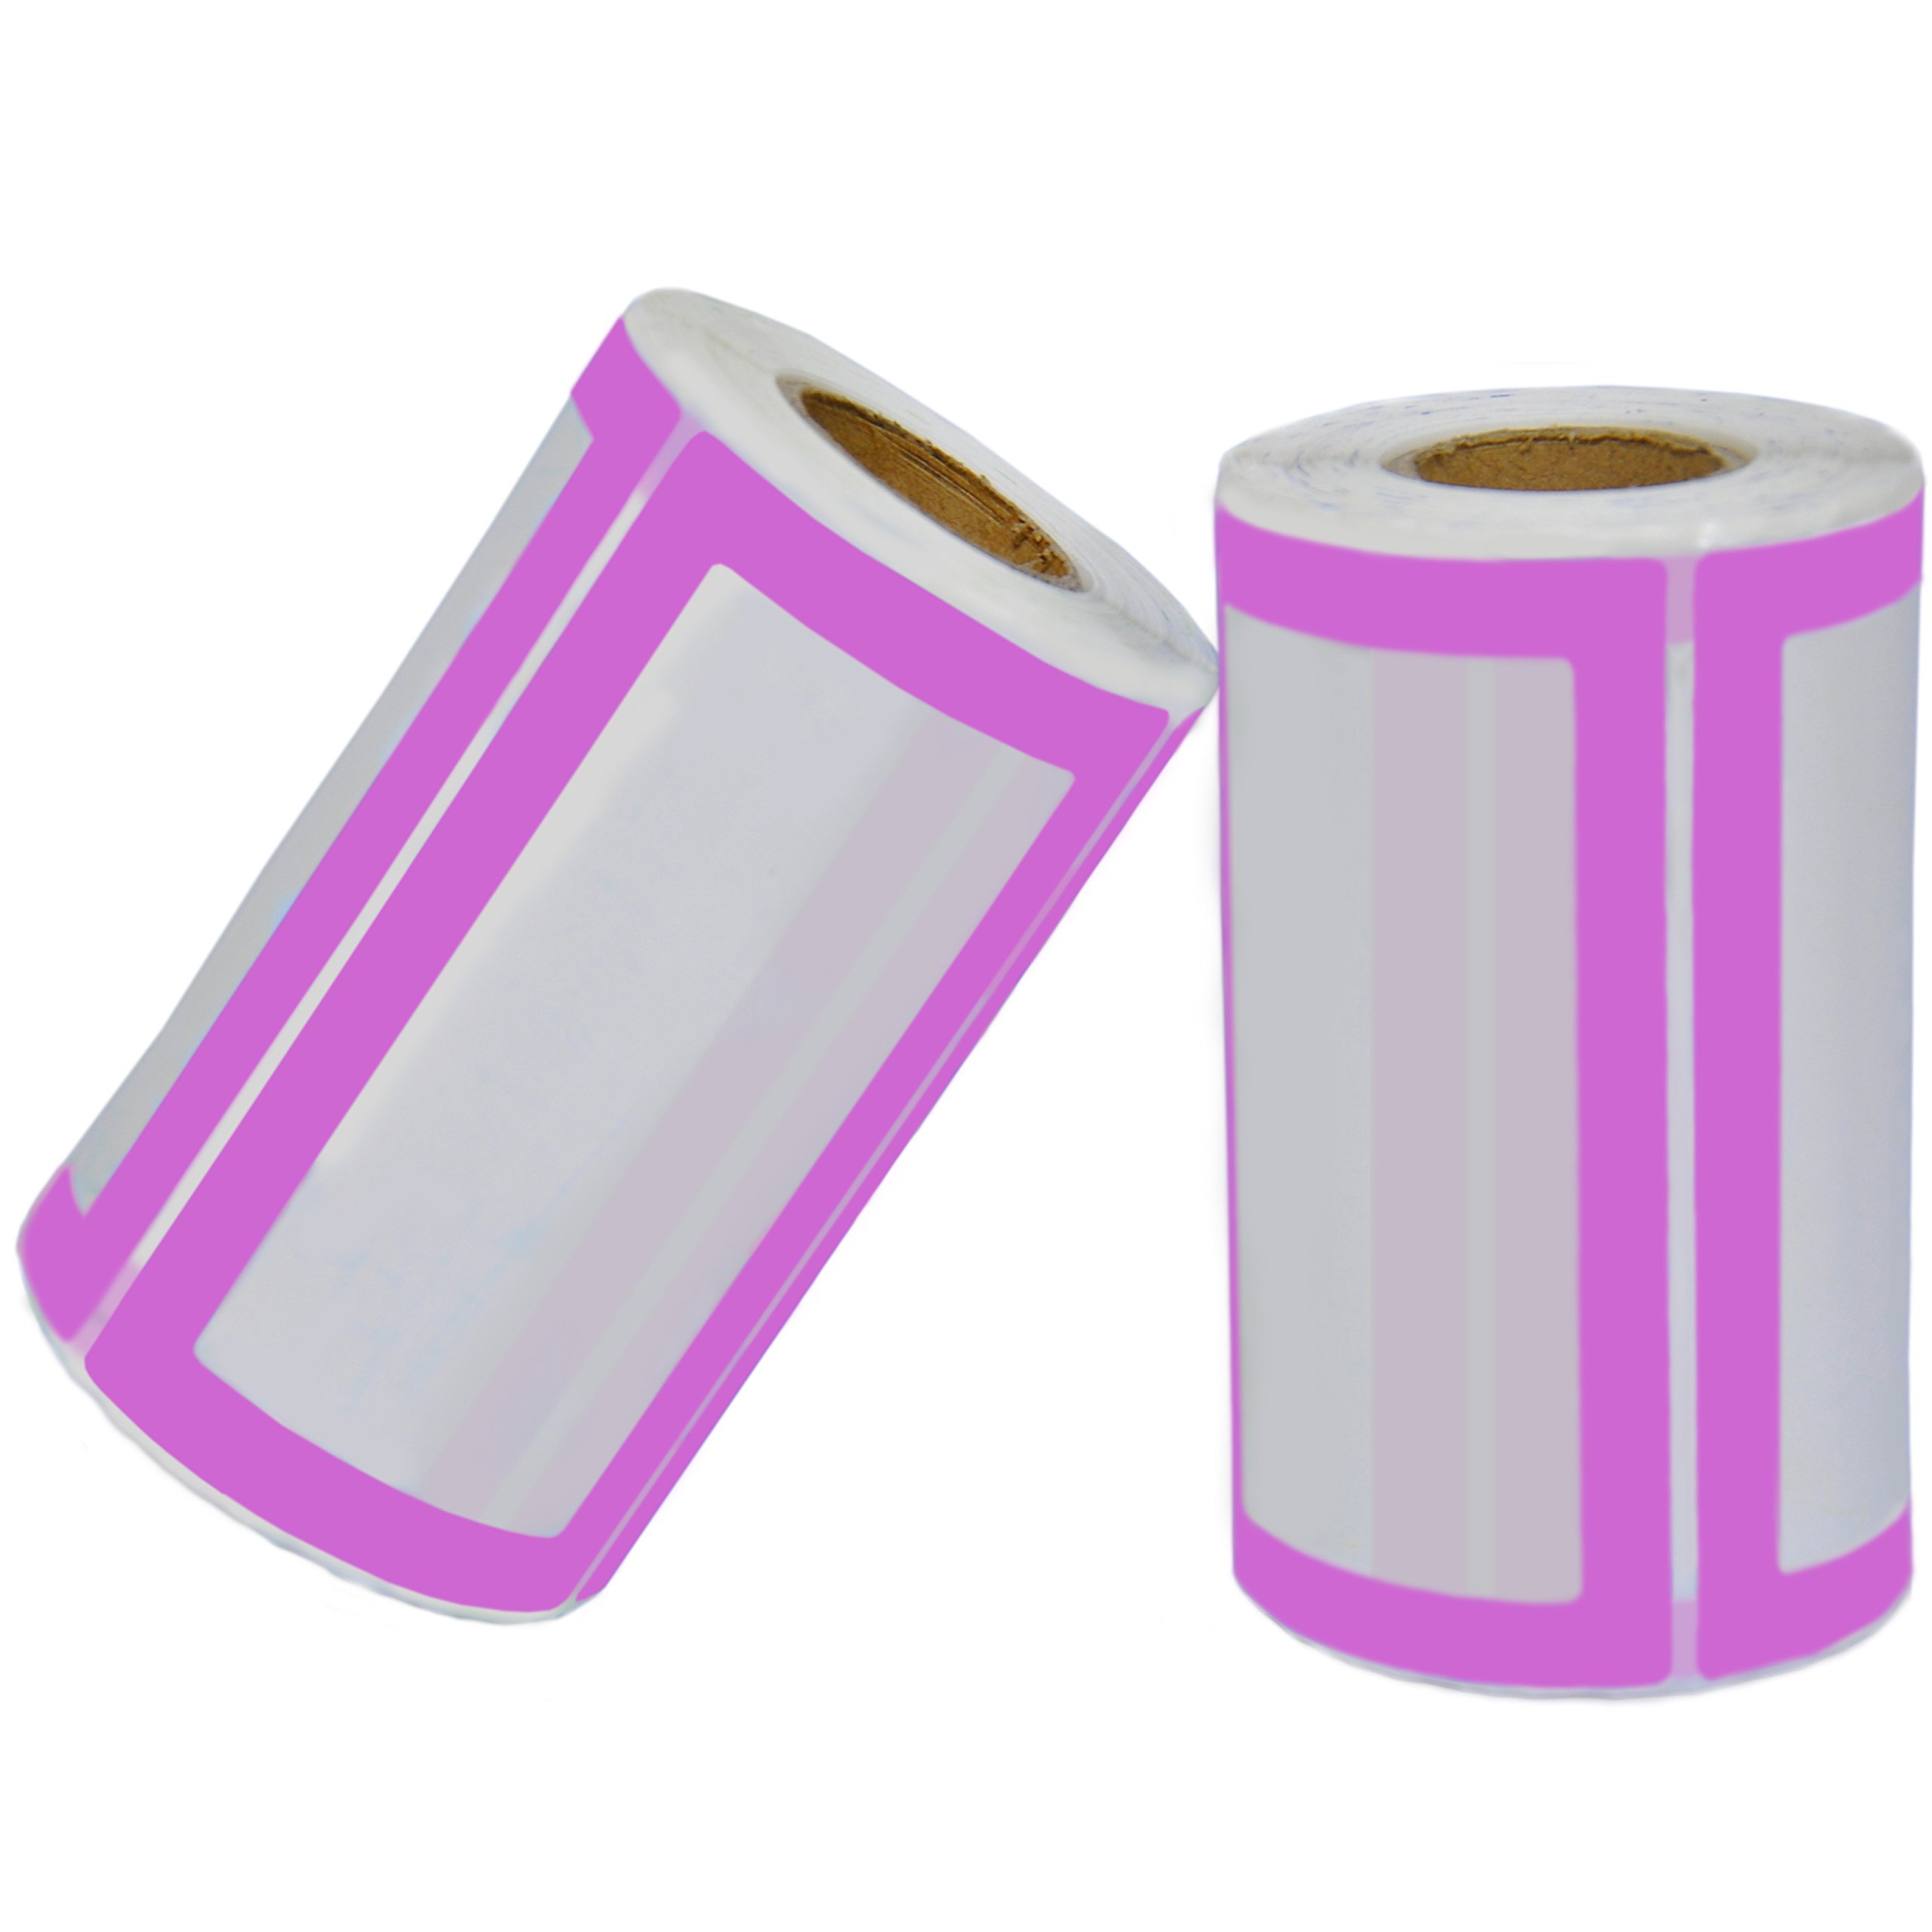 Colorful Plain Name Tag Labels - 2 Rolls 500 Stickers in Total - 3.5 x 2 inches - Nametags for Jars, Bottles, Food Containers, Folders, Birthday Parties and Kids Clothes (Purple/Purple 2 Pack) by Navy Penguin (Image #3)